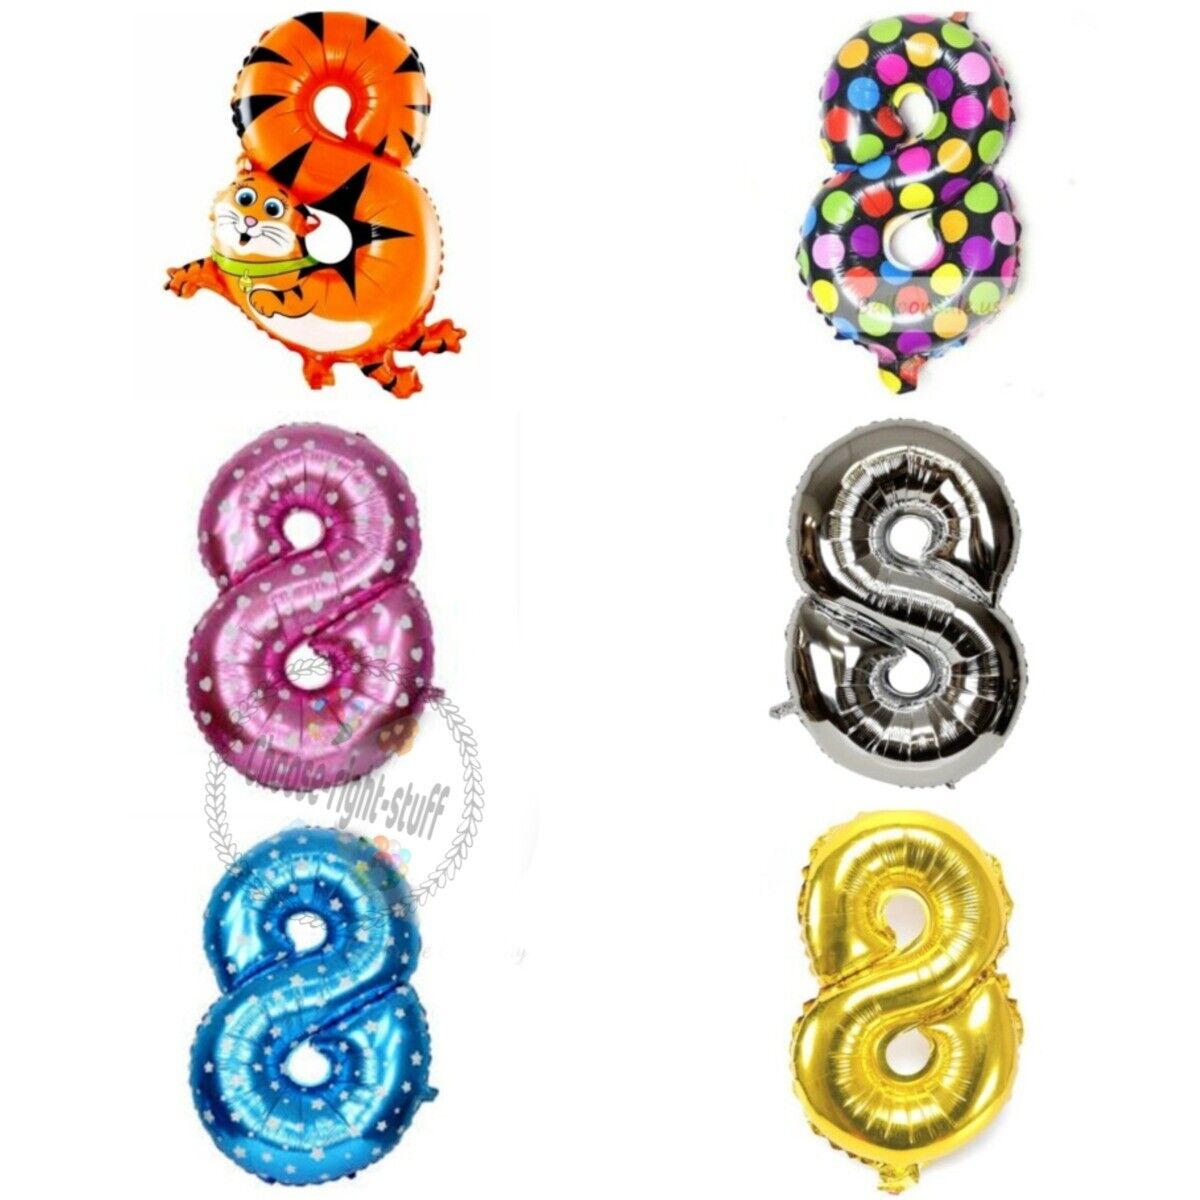 Ombre Colorful 40 Inch Helium Foil Mylar Number Balloons Combine Into 10th 20th 30th 40th 50th 60th 70th 80th 90th 100th Birthday Party Decorations Tellpet Number 0 Balloon